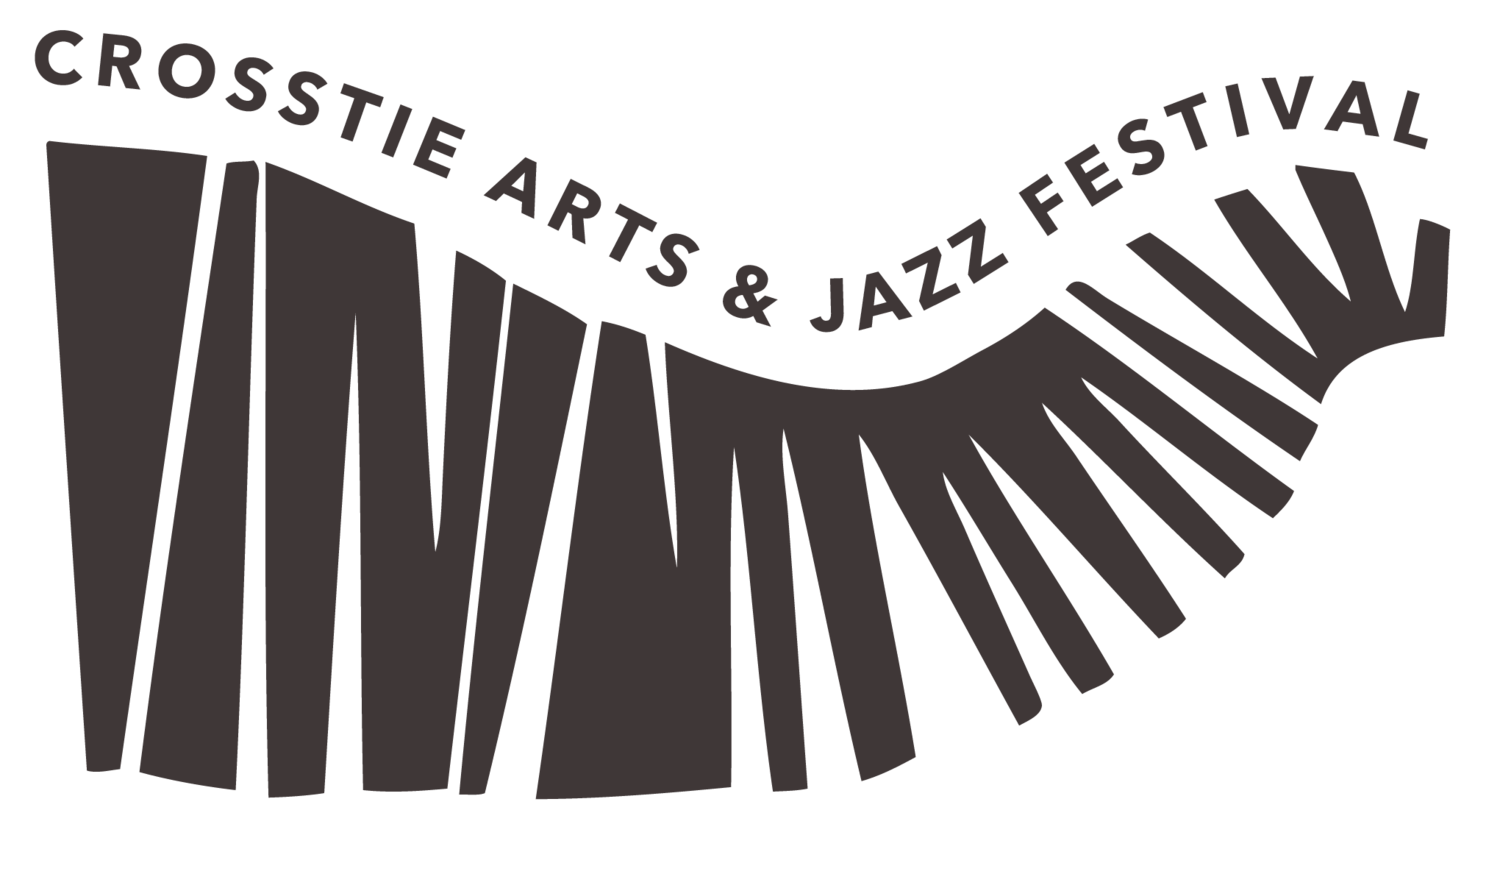 Crosstie Arts & Jazz Festival